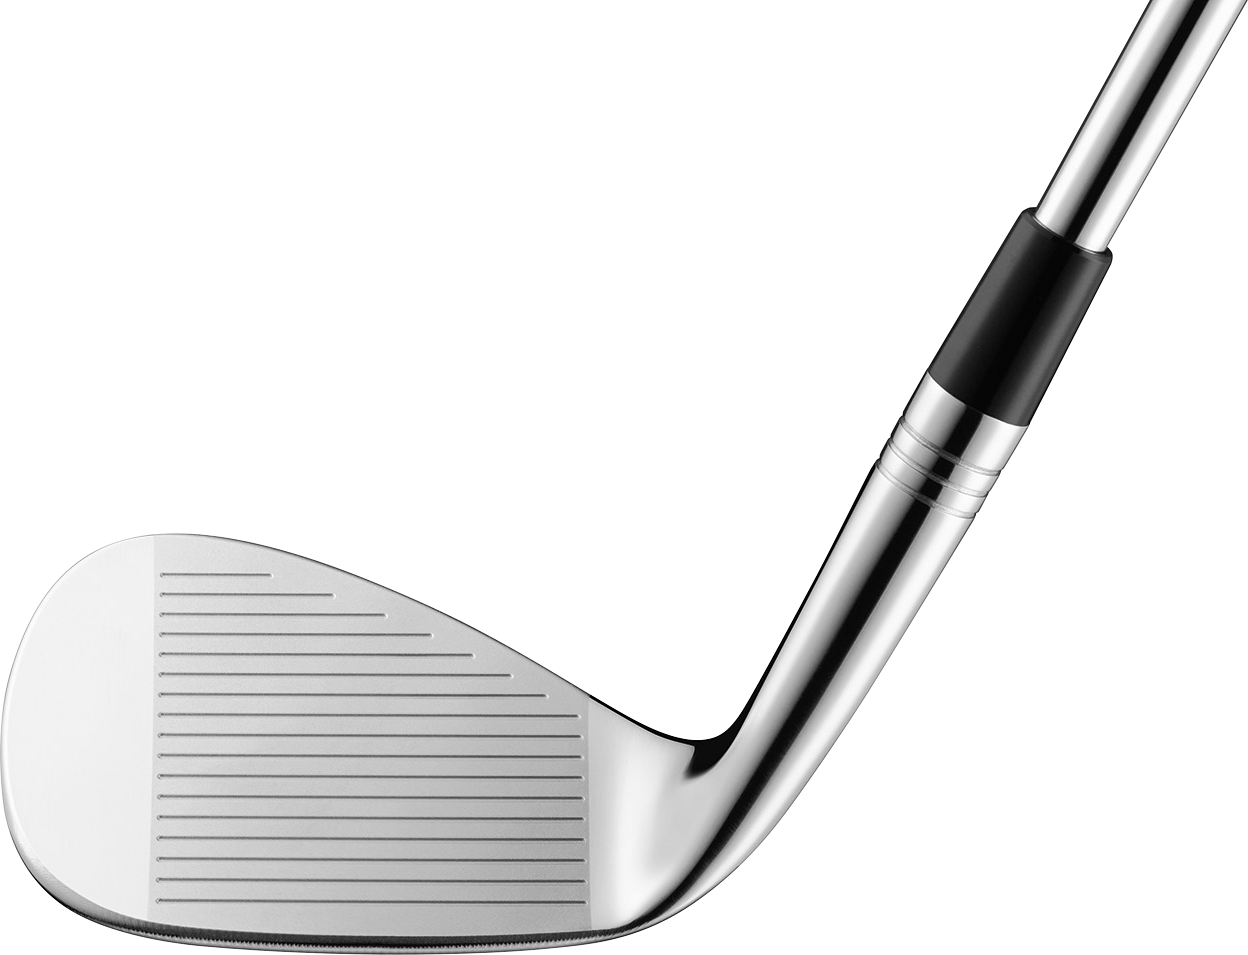 Golf club png. Taylormade company introduces milled